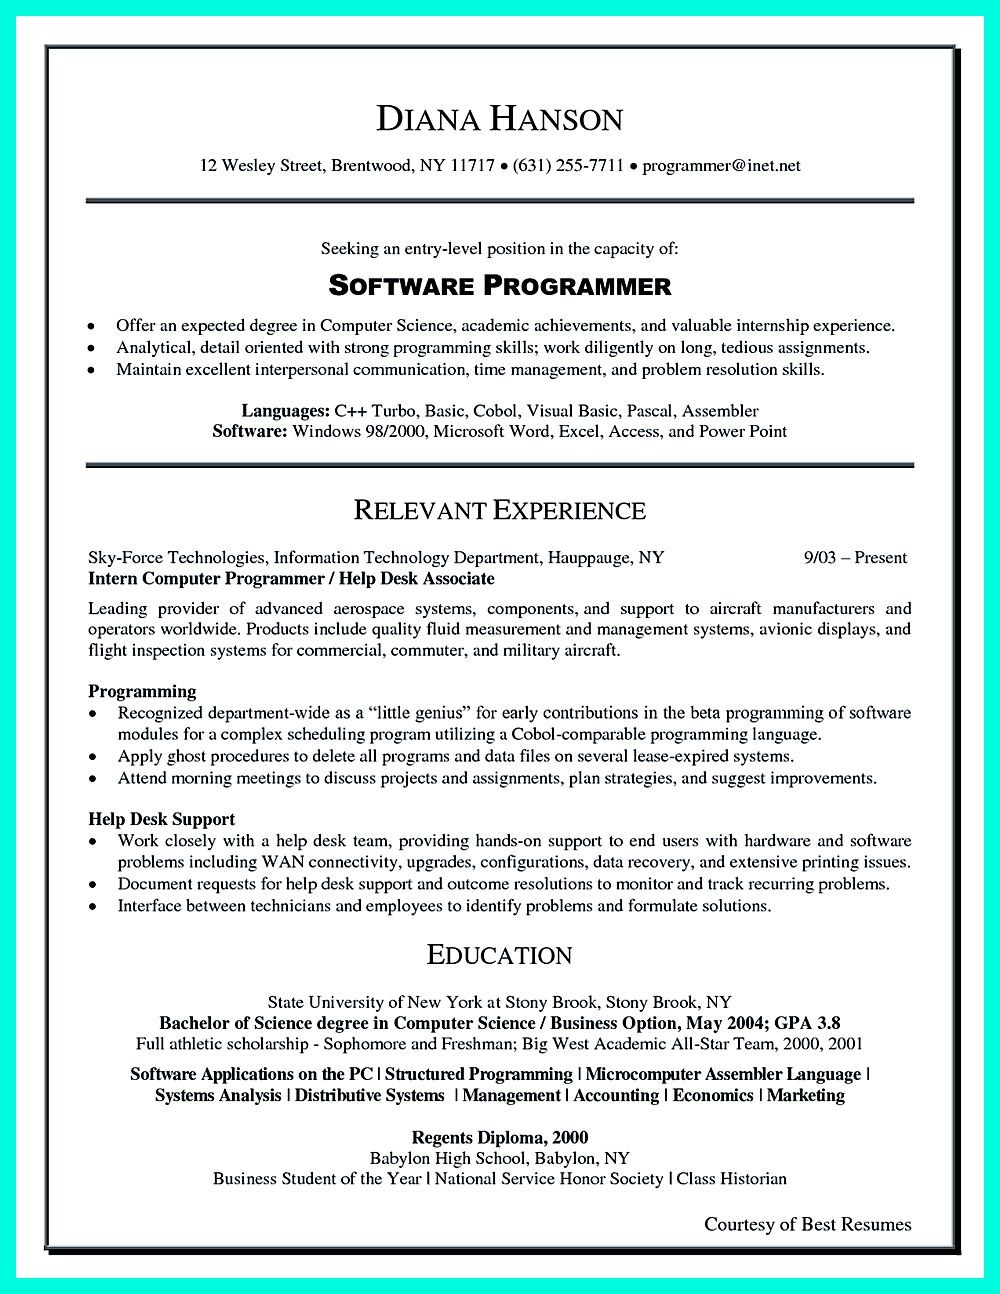 Computer programmer resume has some paragraphs that focuses on the ...